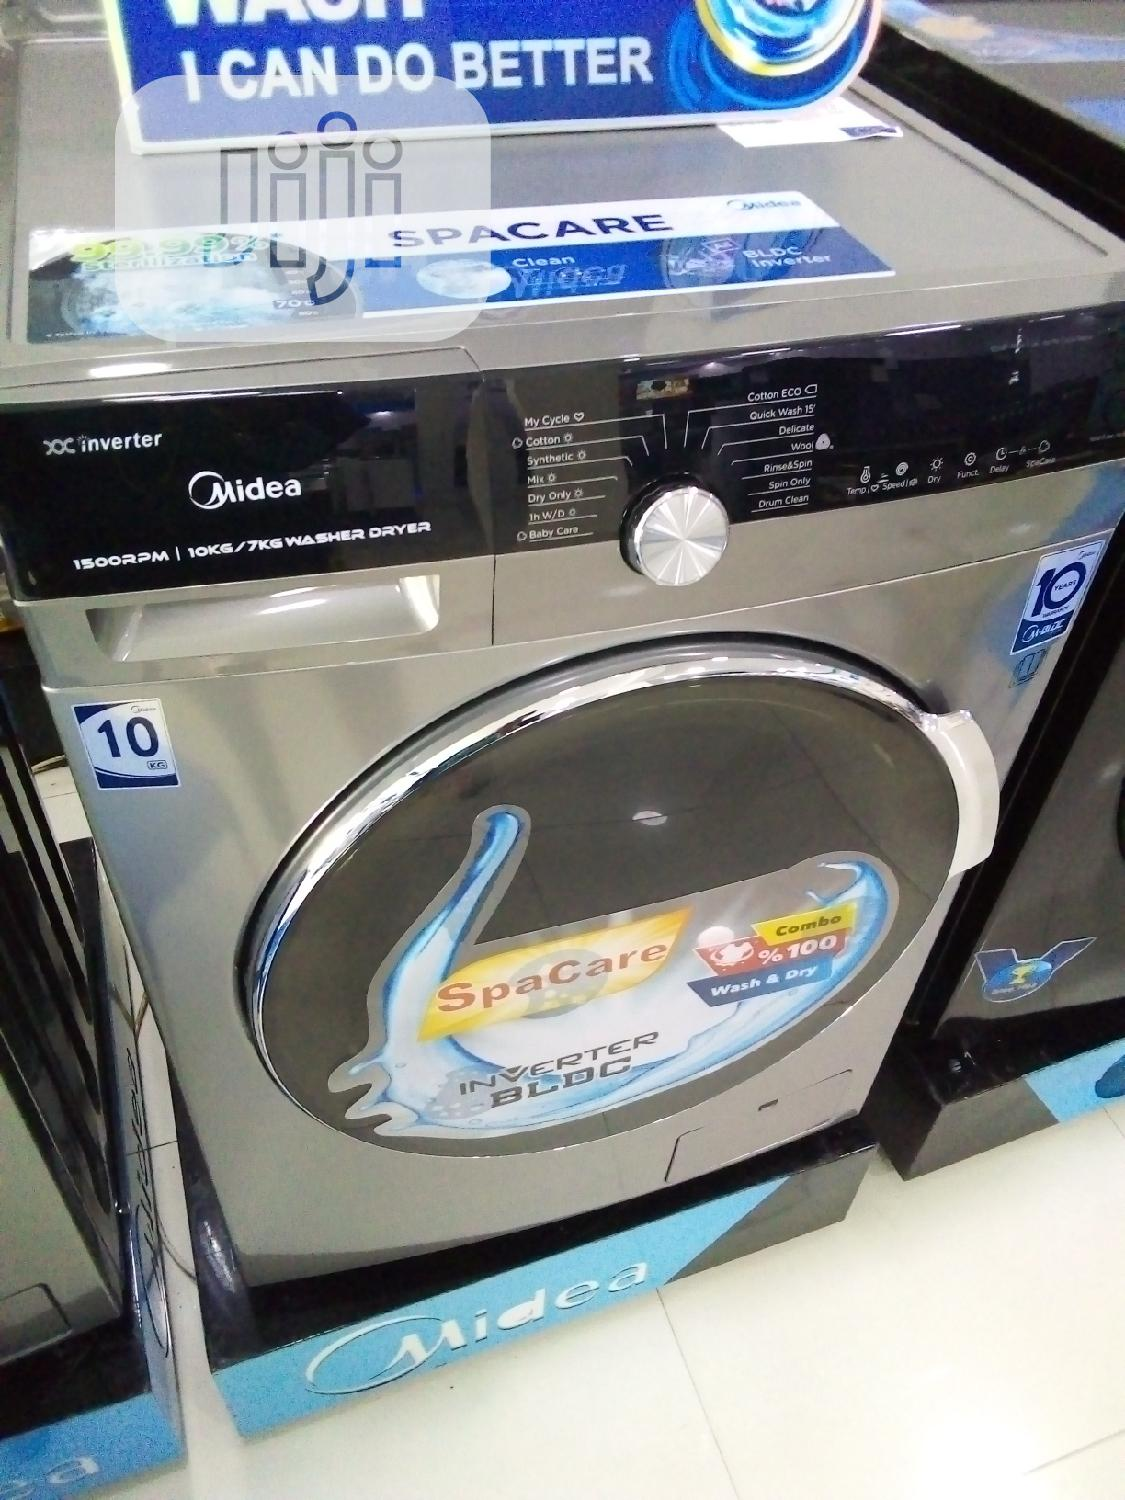 Archive: Midea Washer Dryer-Mfk100-Du1501b/C35e-E(A)10kg Front Loader